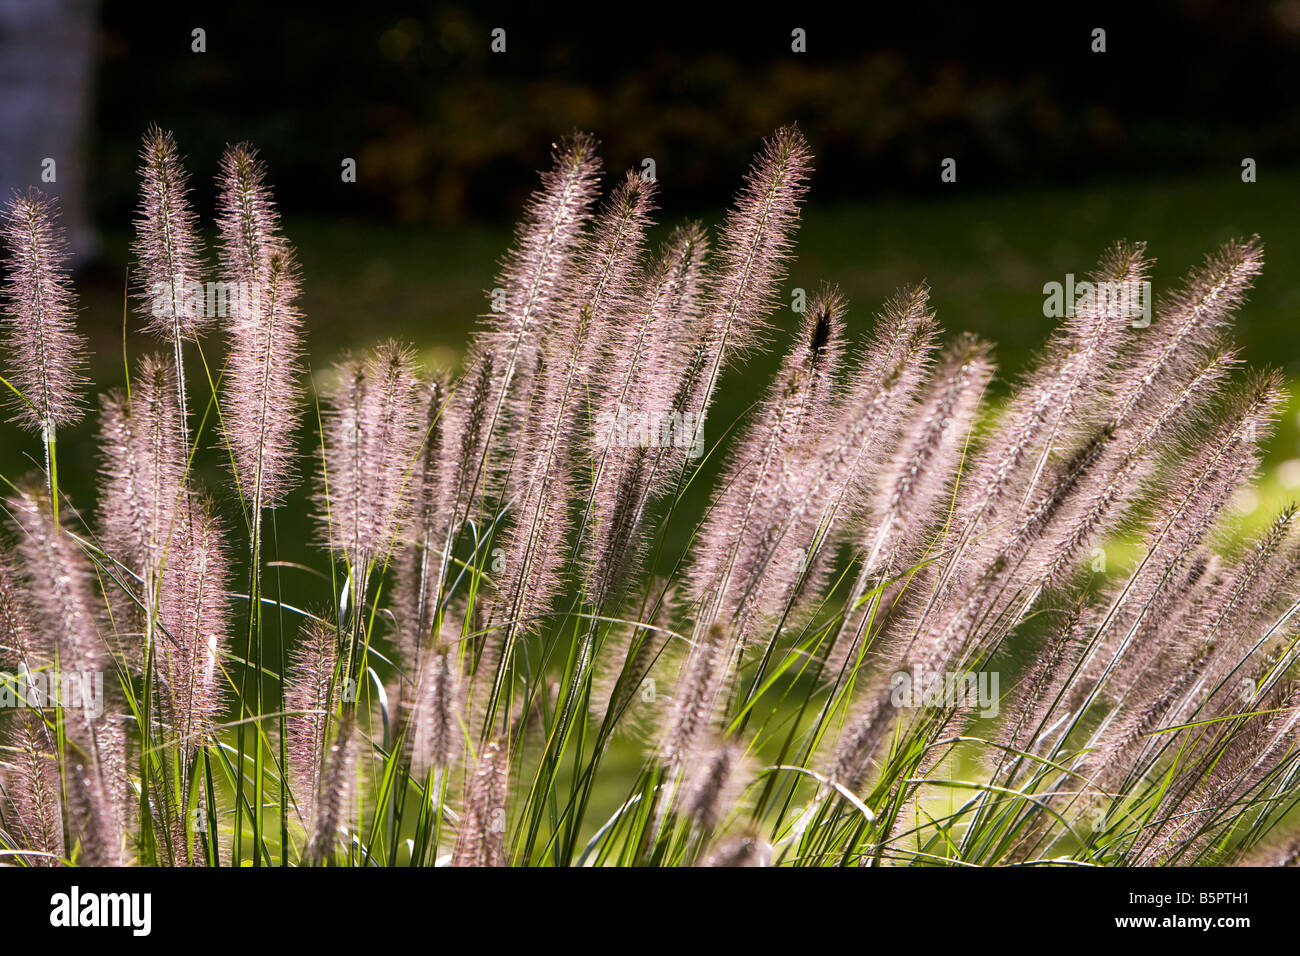 Pennisetum alopecuroides chinese fountain grass - Stock Image